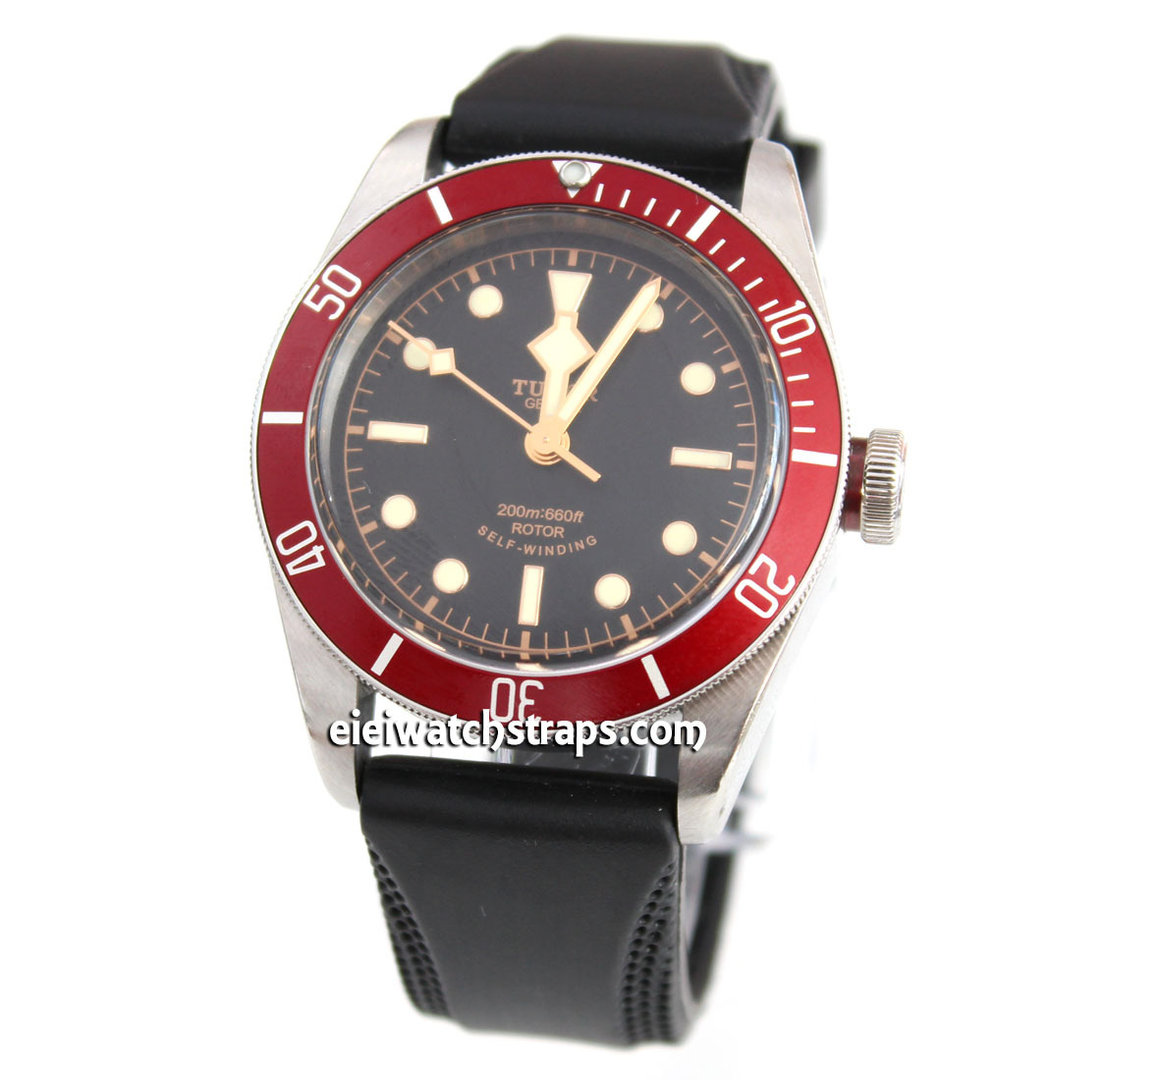 Monza 22mm silicon rubber watch strap for tudor black bay watches for Rubber watches